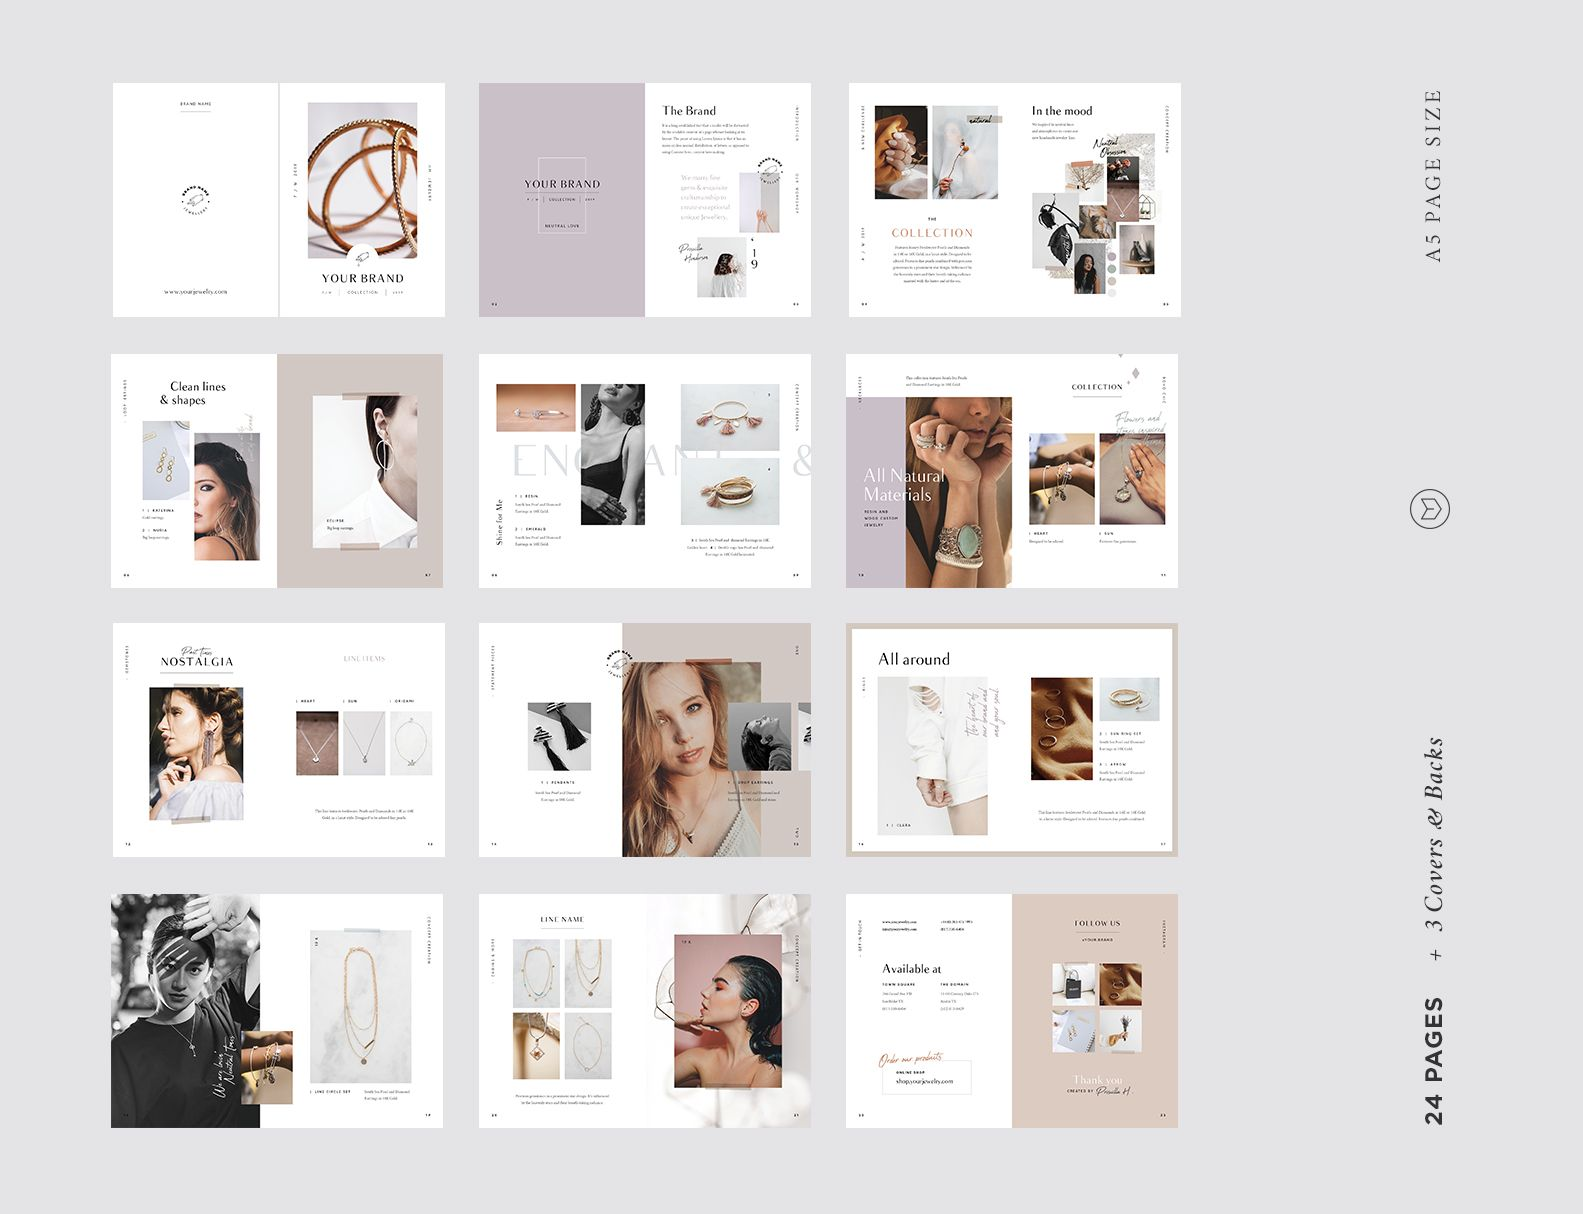 A5 Jewelry Accessories Fashion Lookbook Catalog Printable Template Or Digital Publication Brochure For Adobe Indesign Catalogue